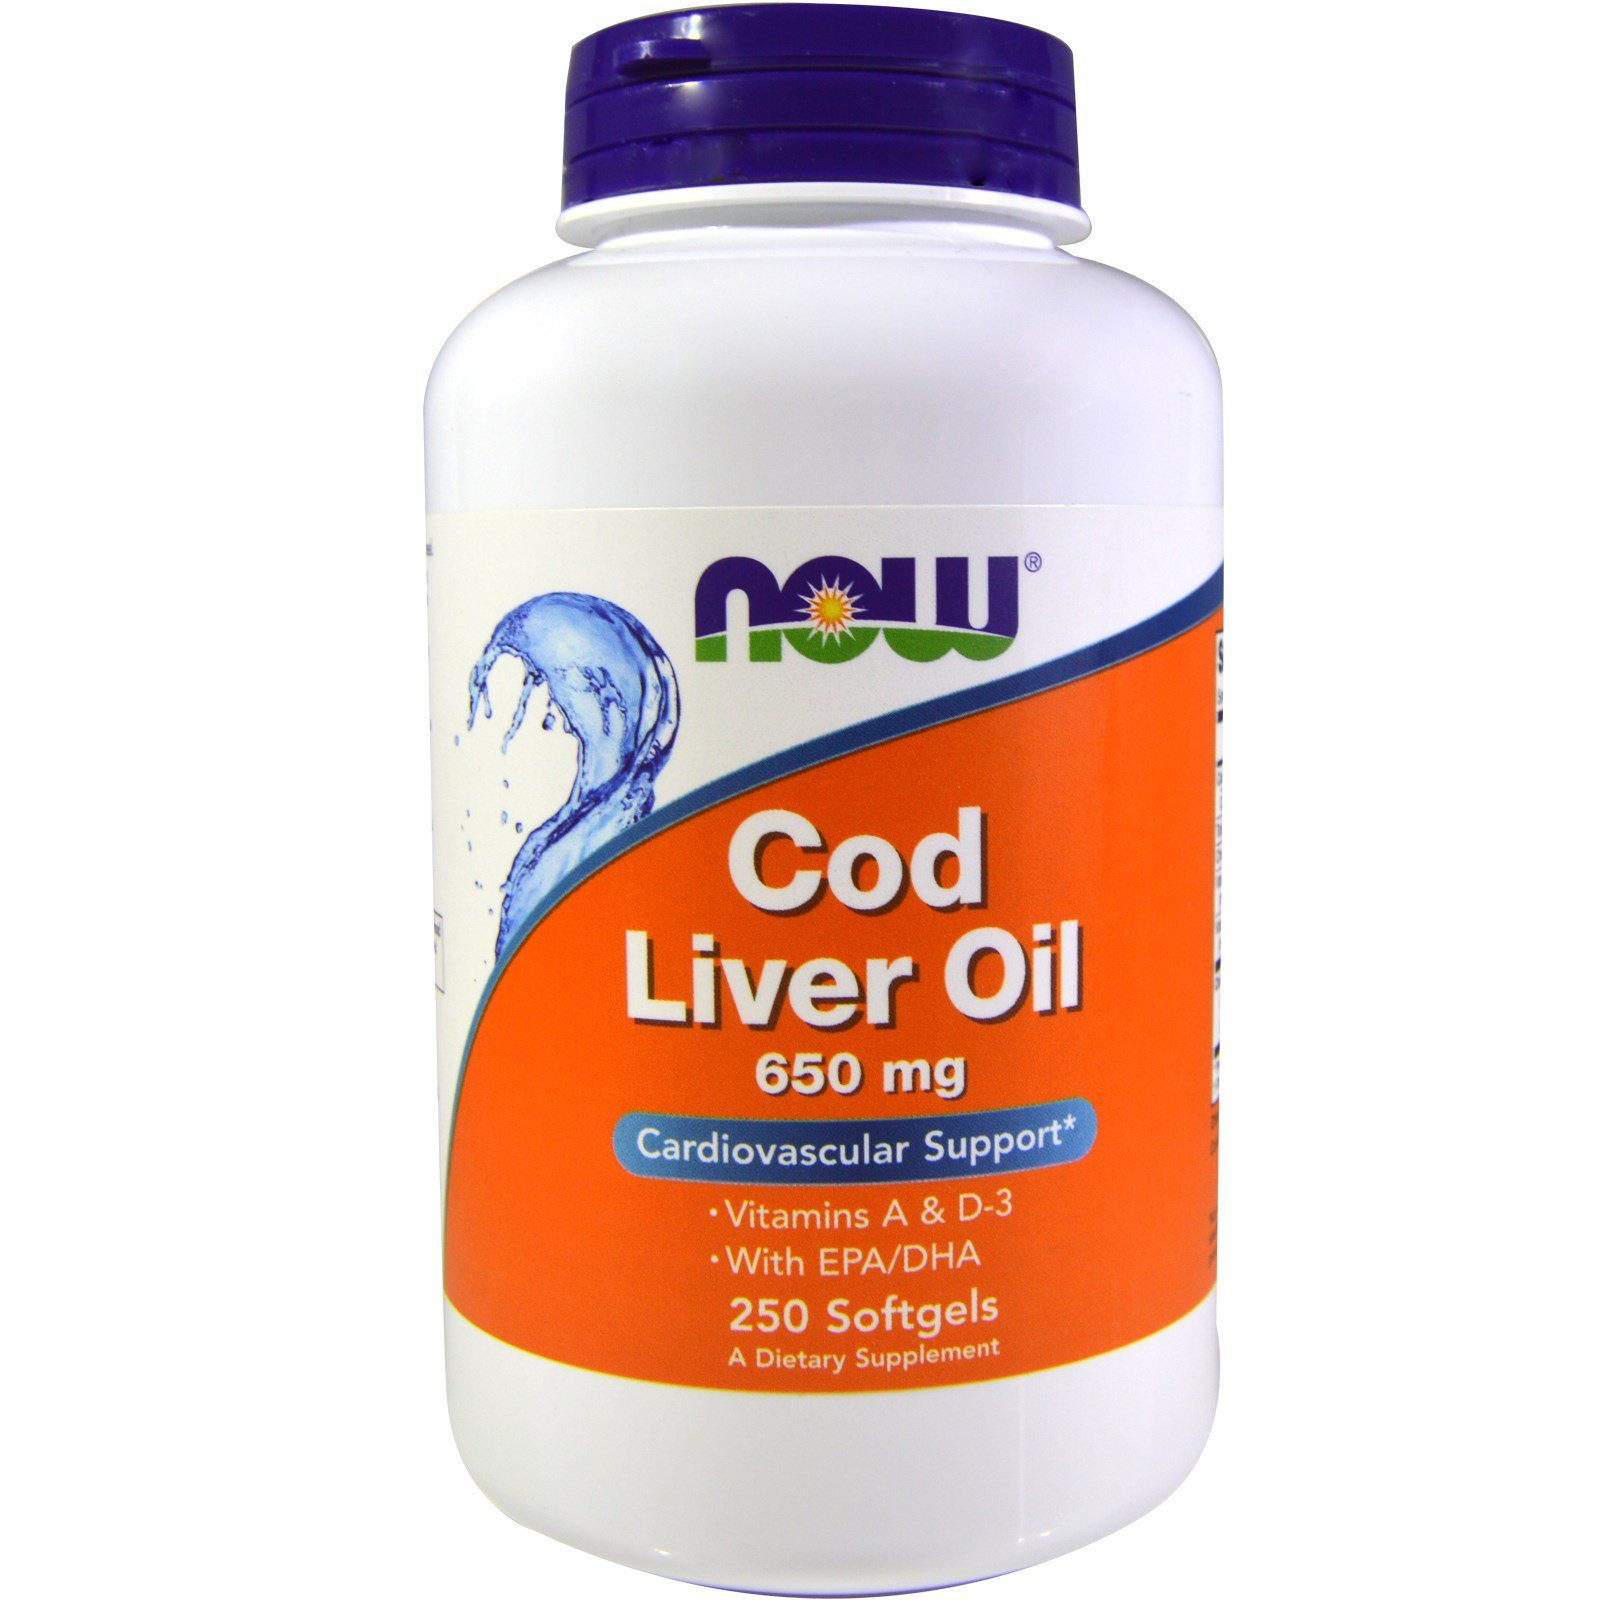 Риб'ячий жир з печінки тріски, Cod Liver Oil, Now Foods, 650 мг, 250 капсул